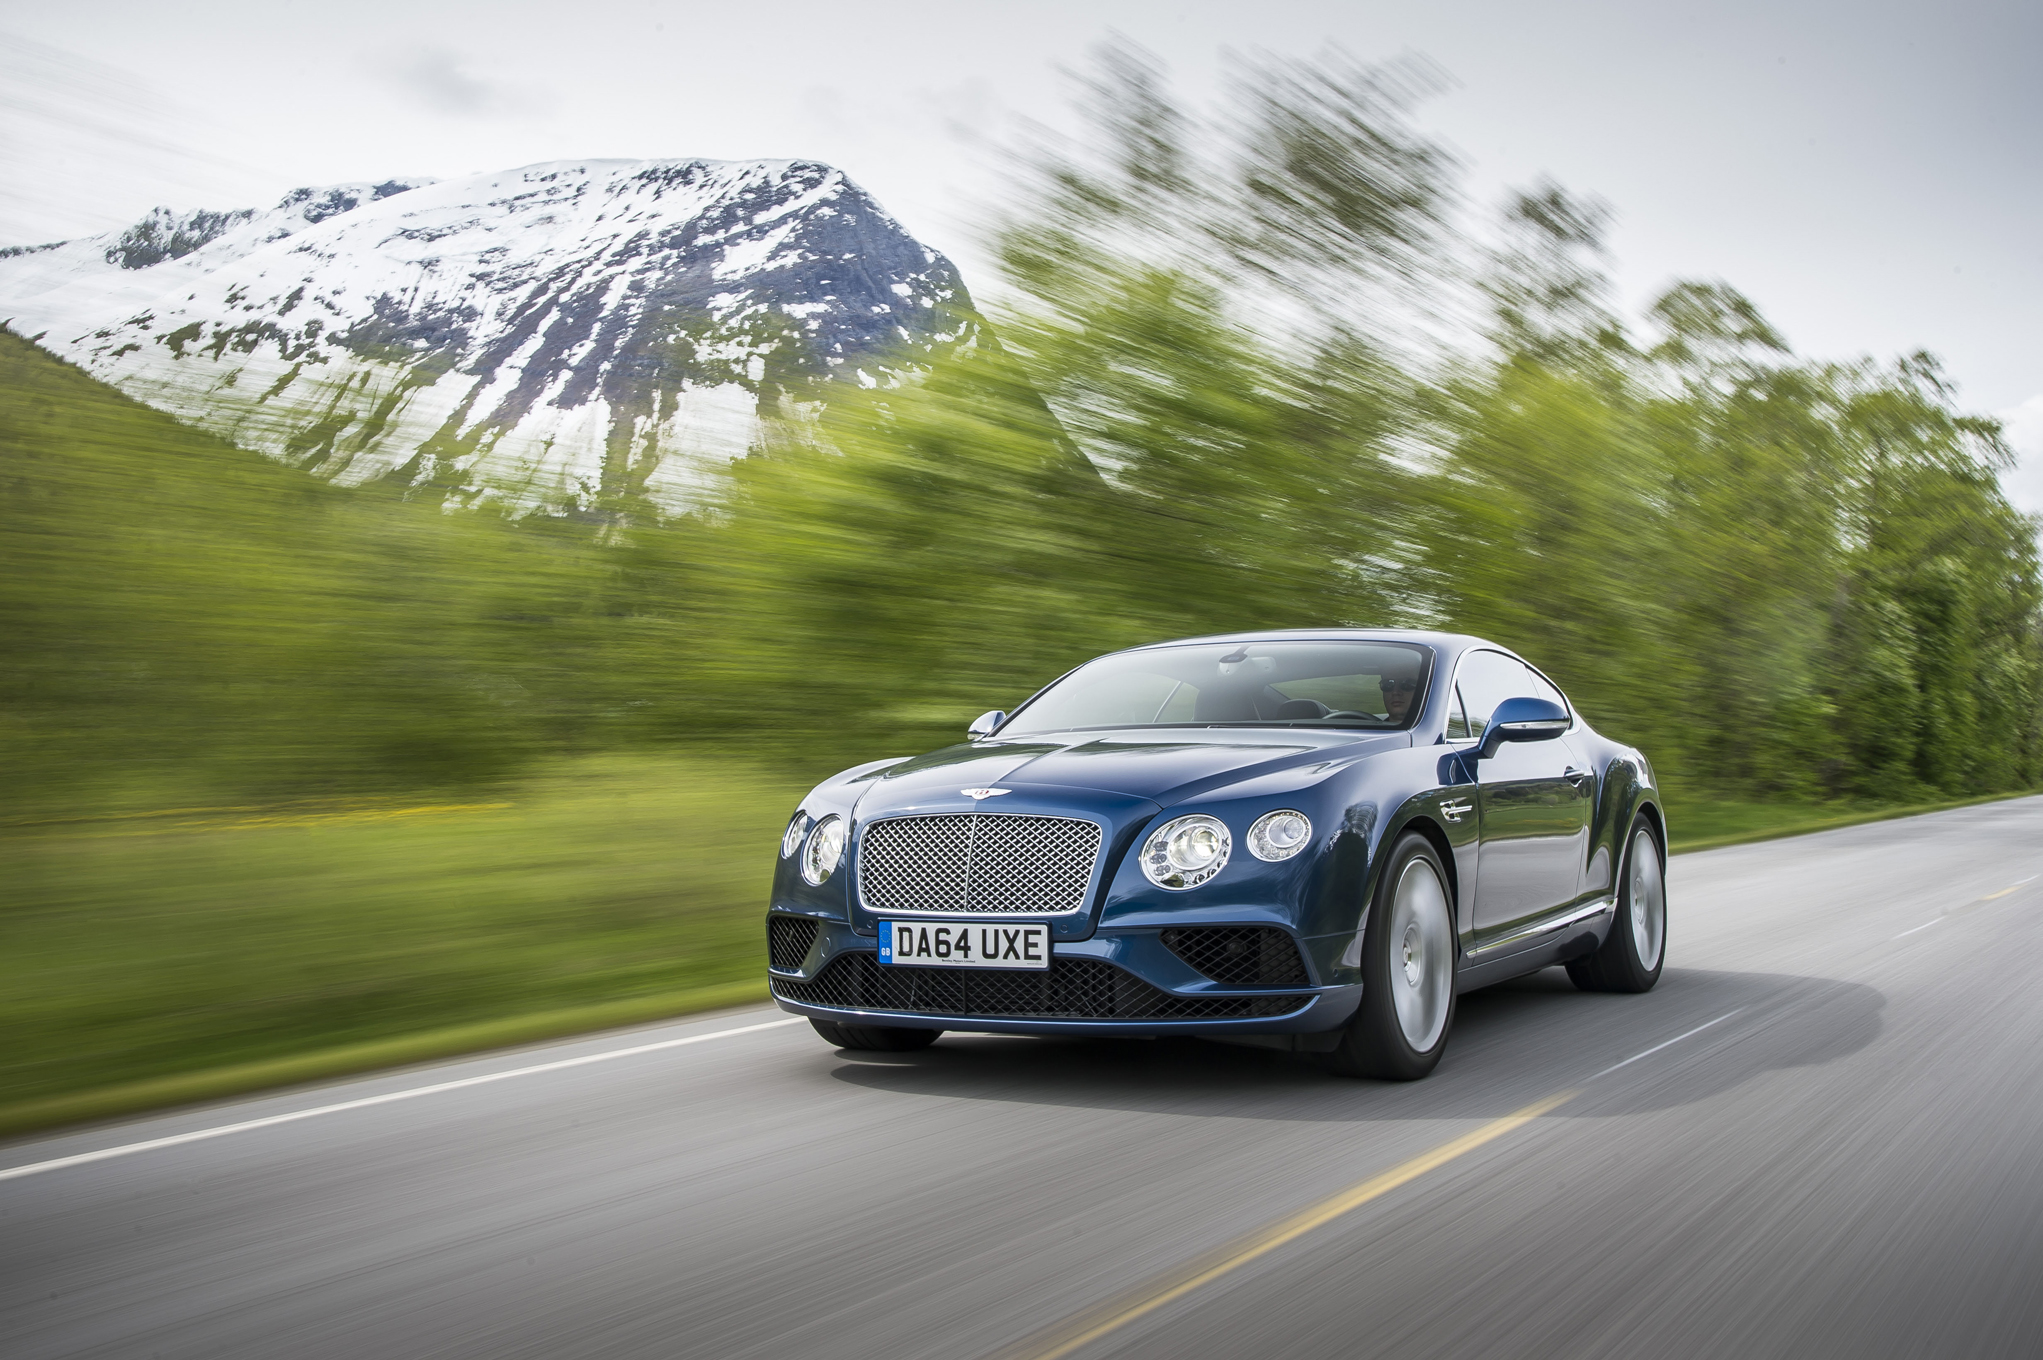 2016 Bentley Continental Gt V8 Coupe (Photo 27 of 27)